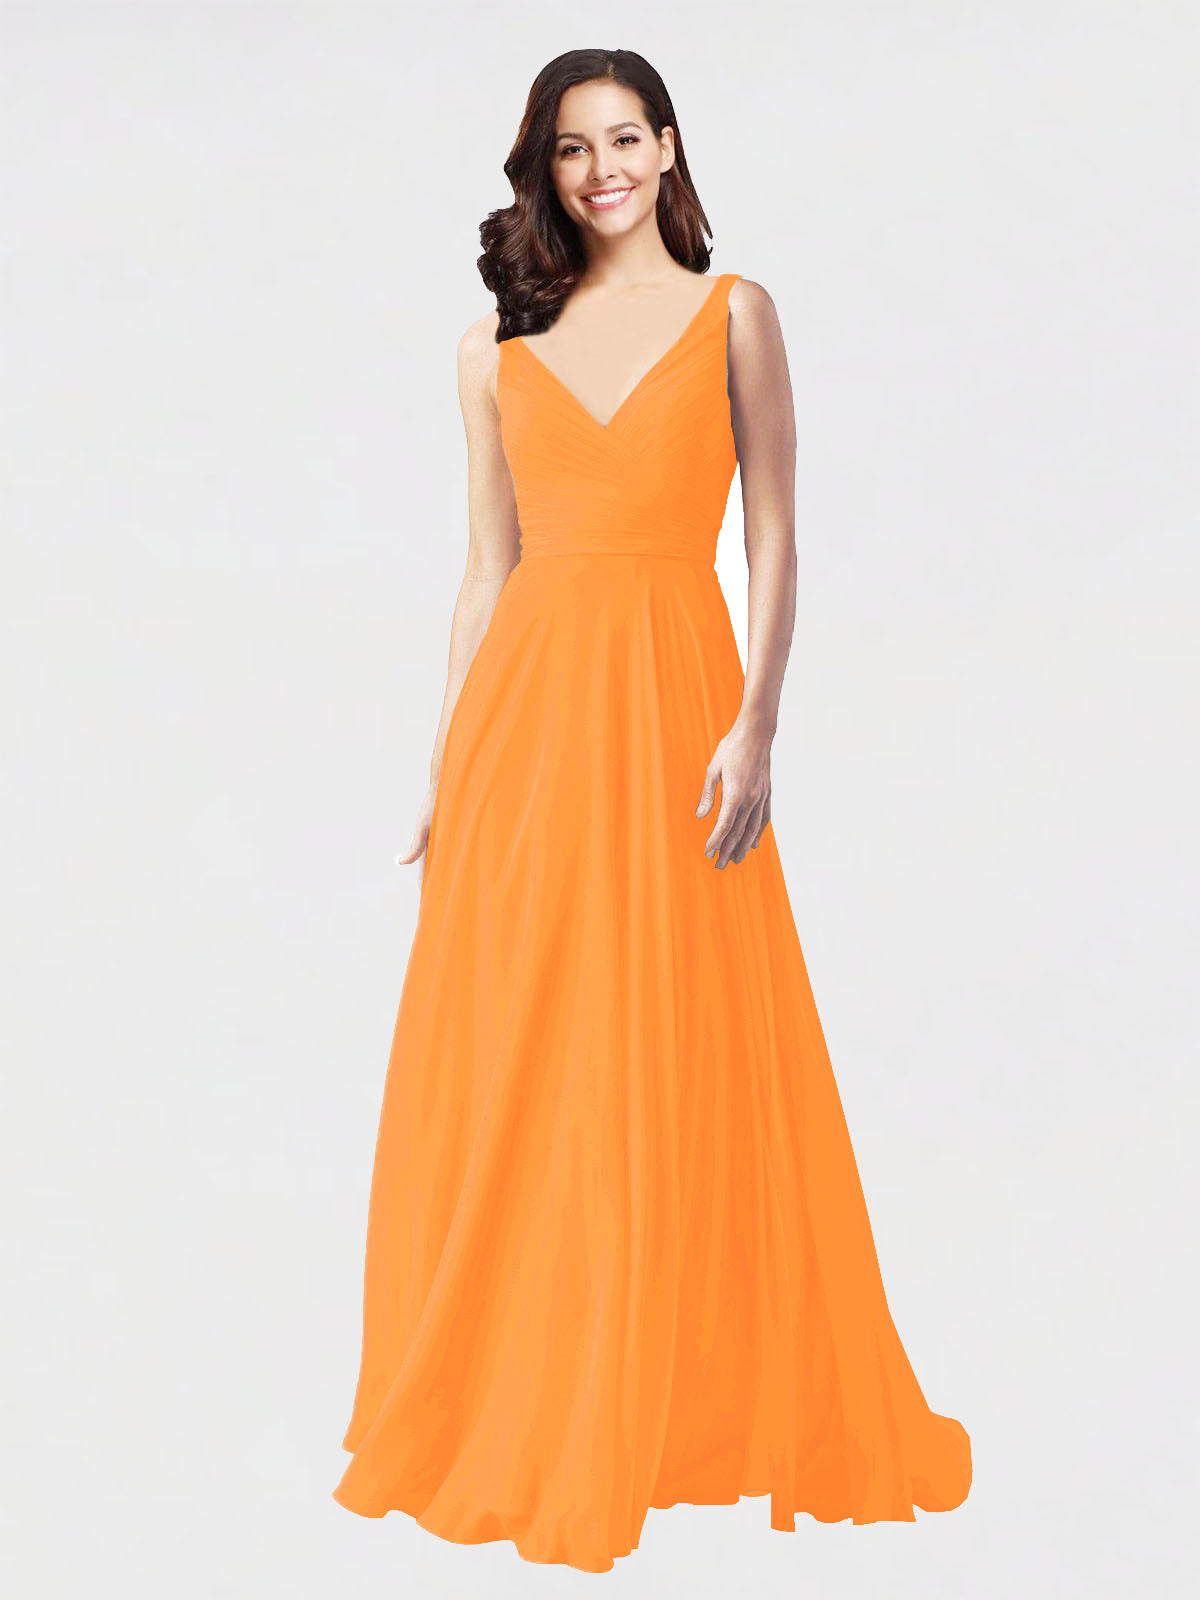 Long A-Line V-Neck Sleeveless Orange Chiffon Bridesmaid Dress Bernice